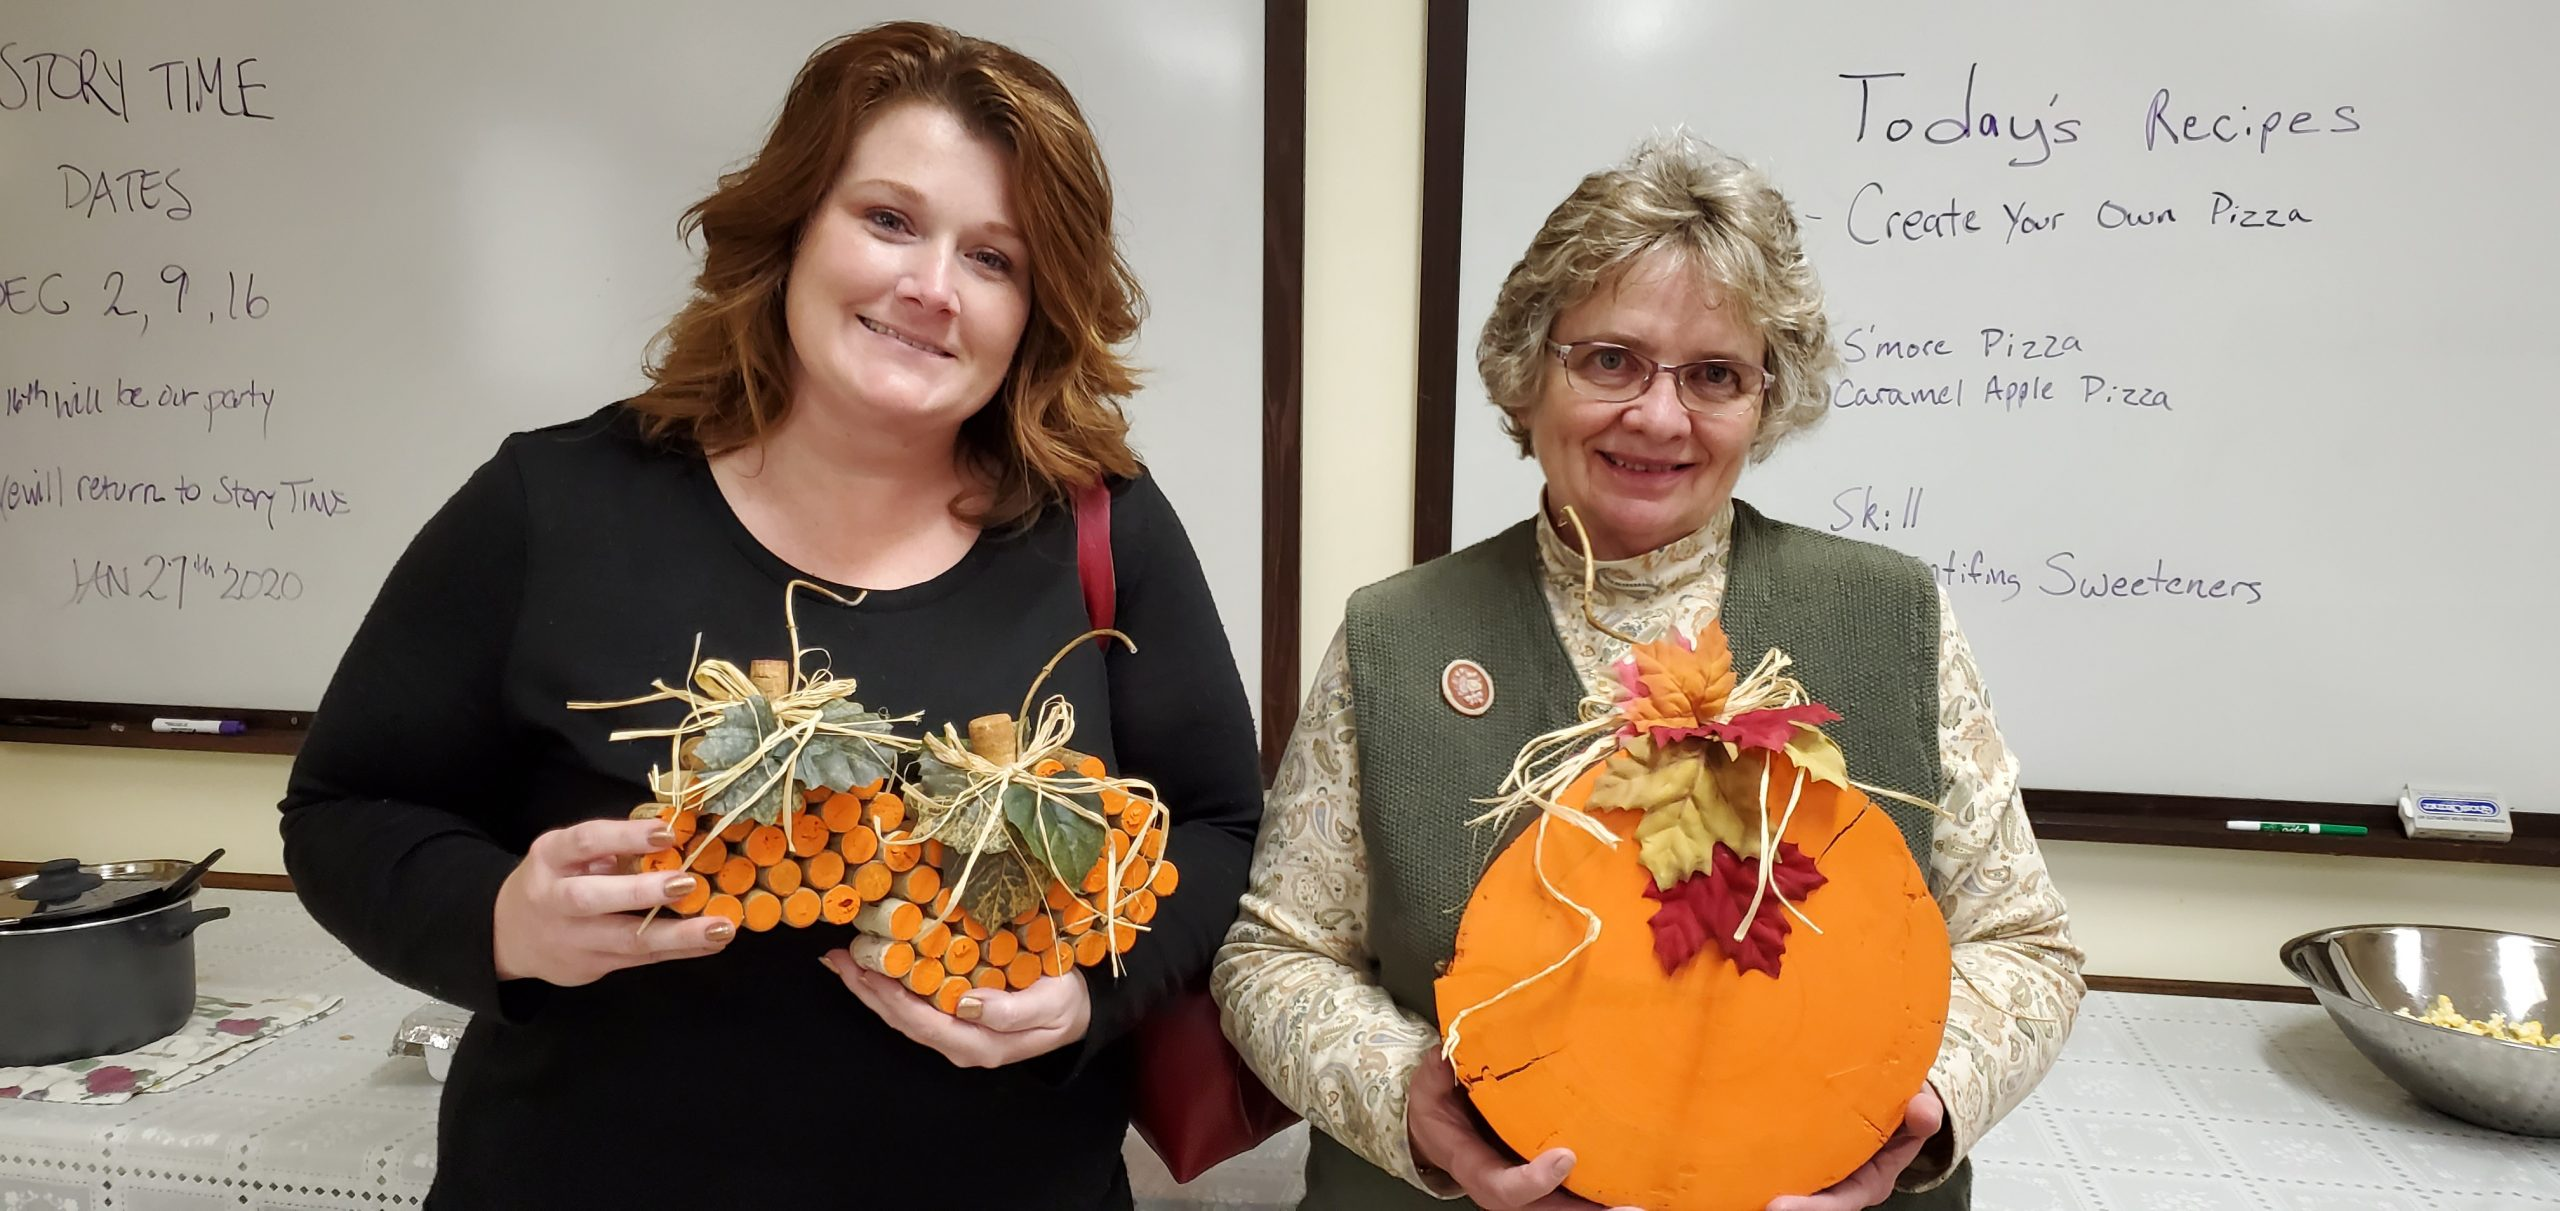 Christina Bennett (l) and Sue Hallam (r) were the lucky door prize winners at our November Ladies Night Out movie program. They won adorable hand crafted fall decor created by Assistant Librarian Judy Lucas.